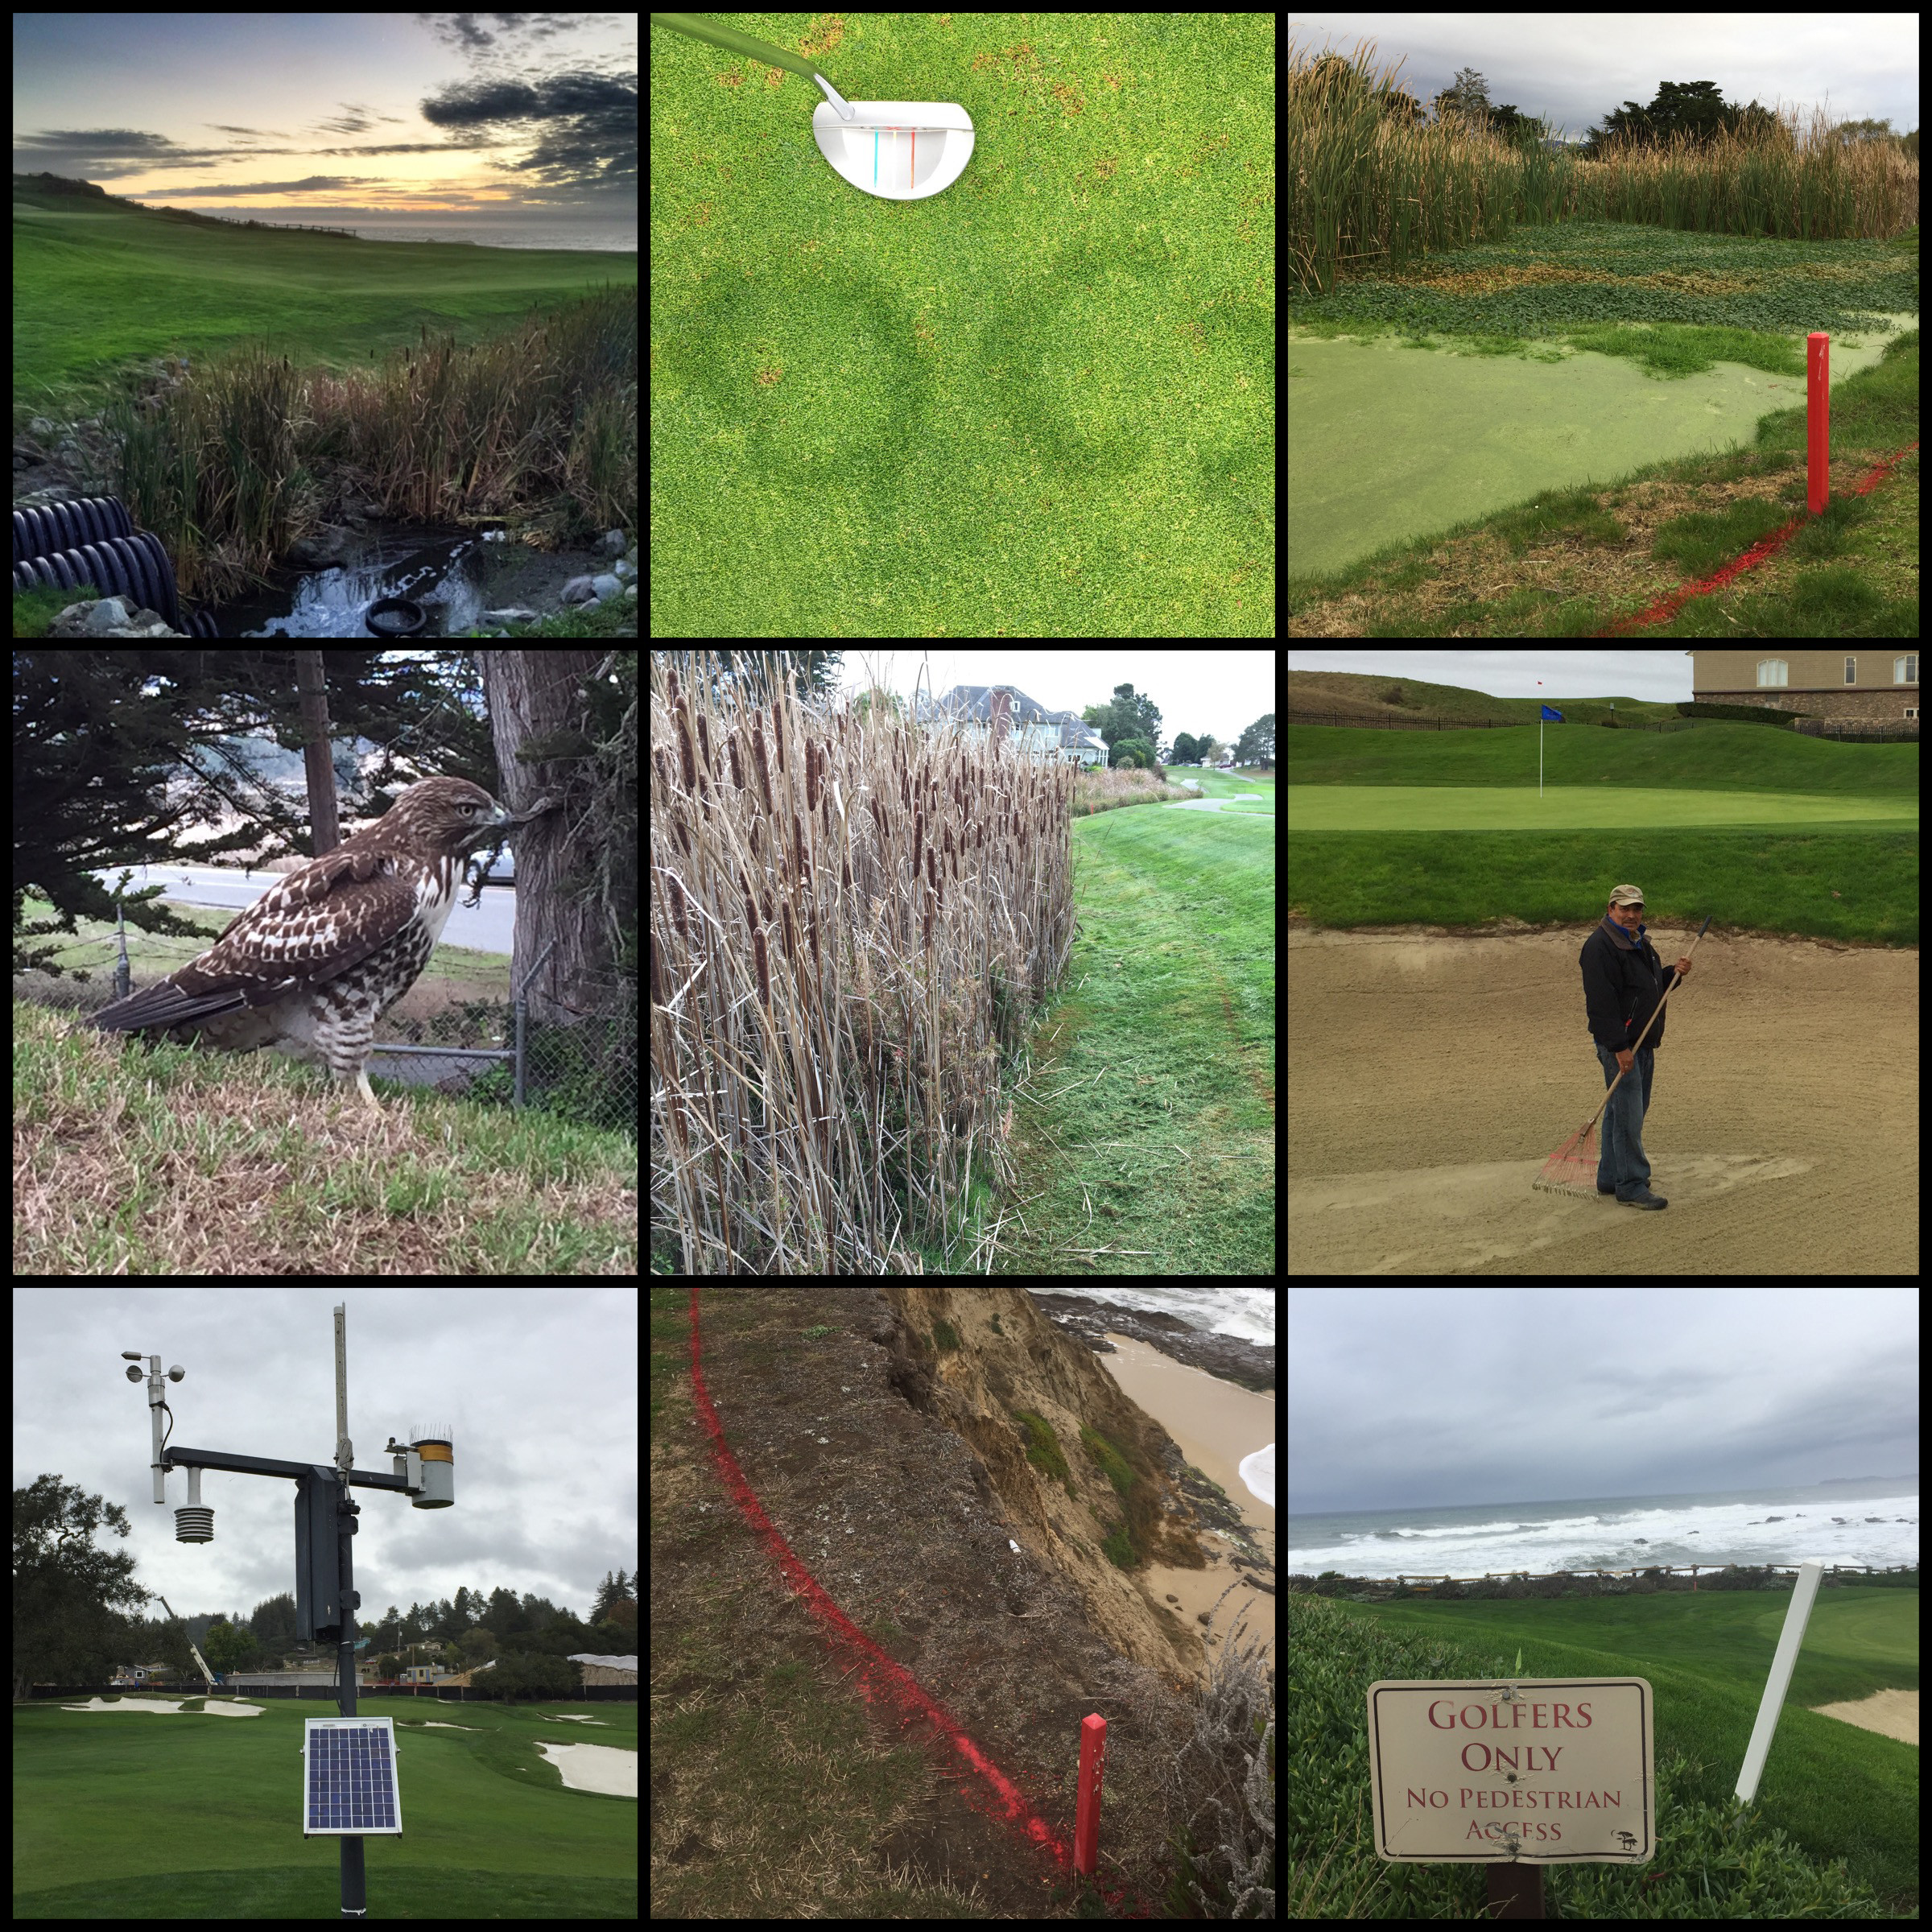 images demonstrating the sustainability of golf